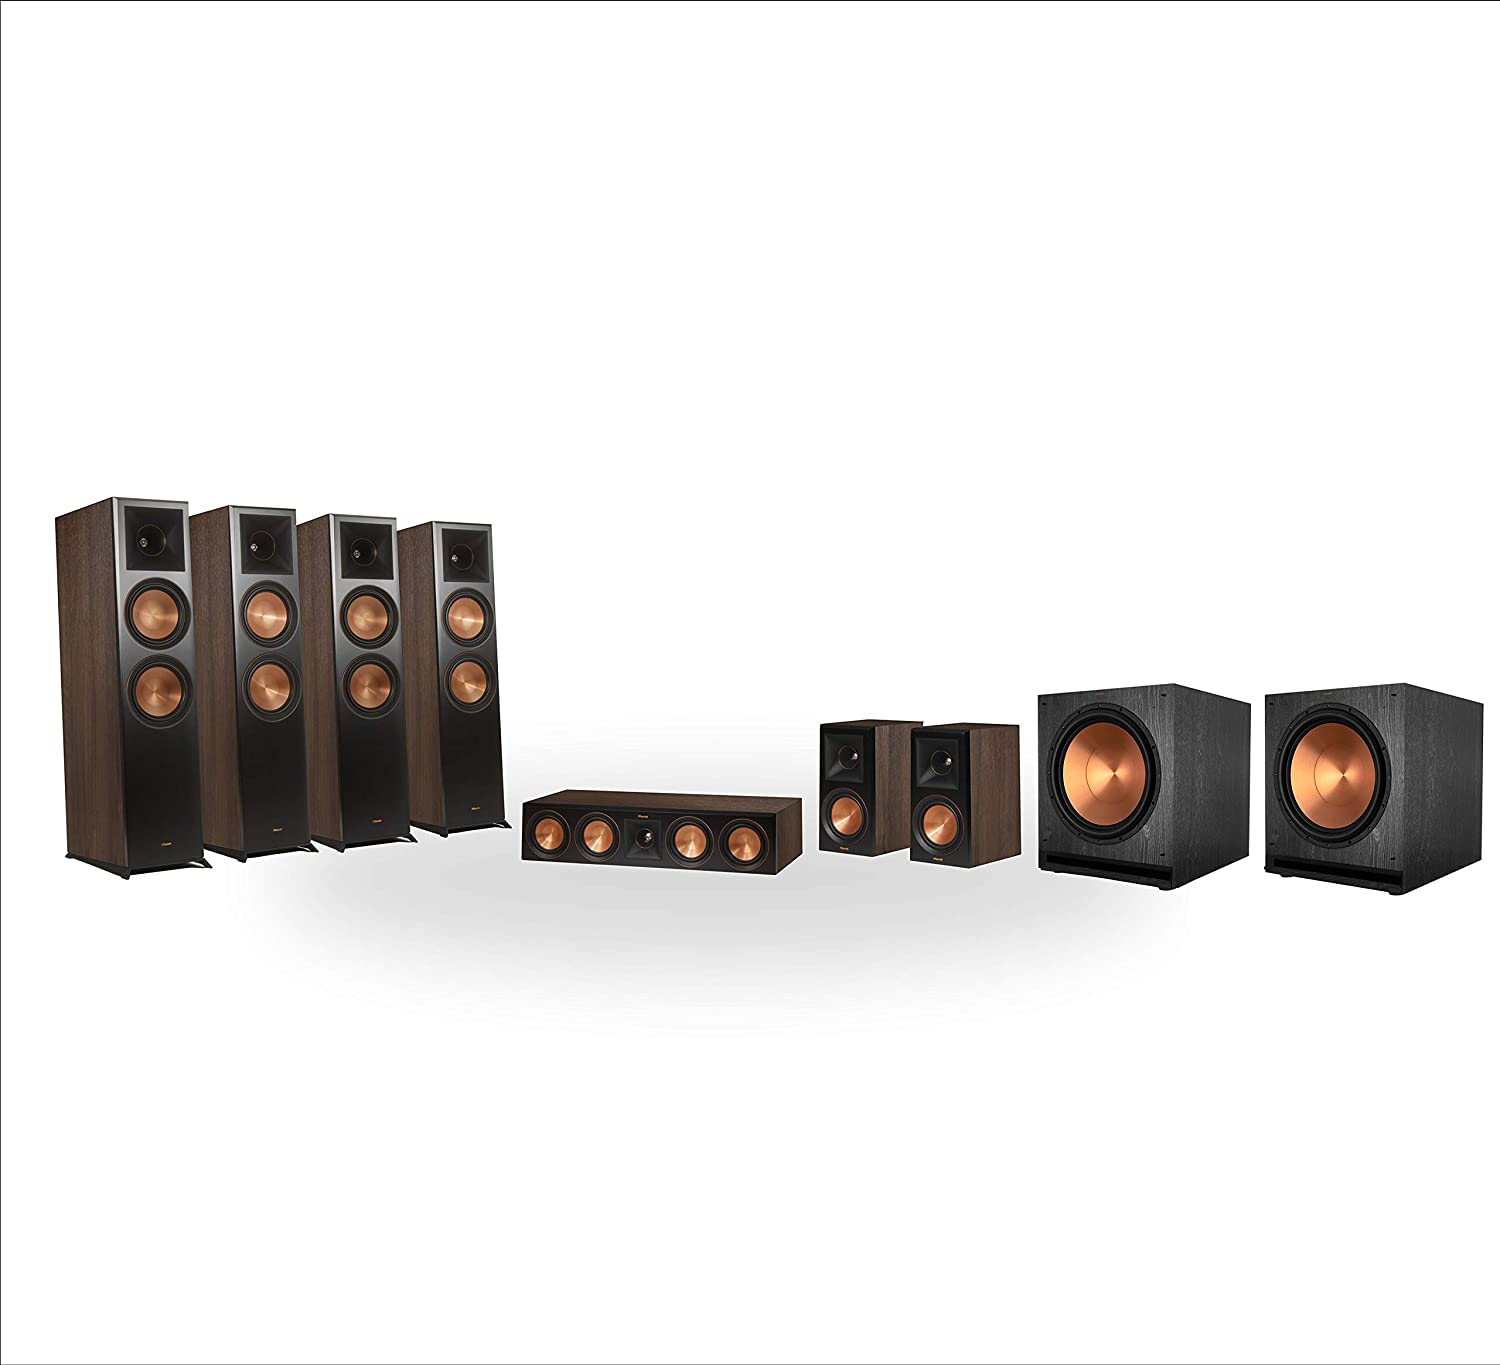 Klipsch RP-8060FA 7.2.4 Dolby Atmos Home Theater System - Walnut